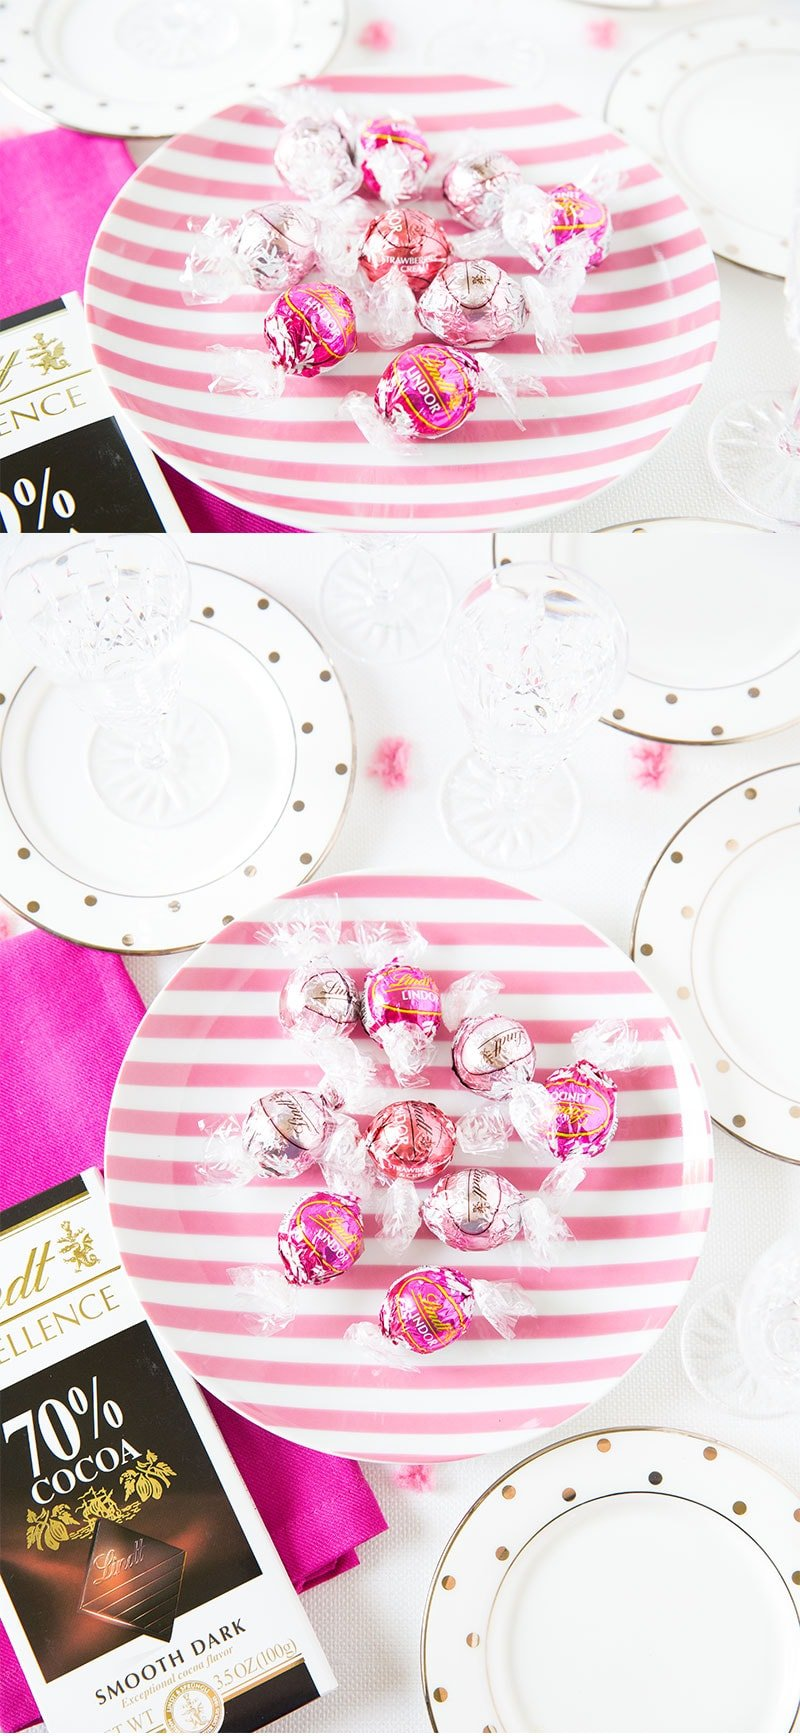 Throw a Pink Chocolate Party